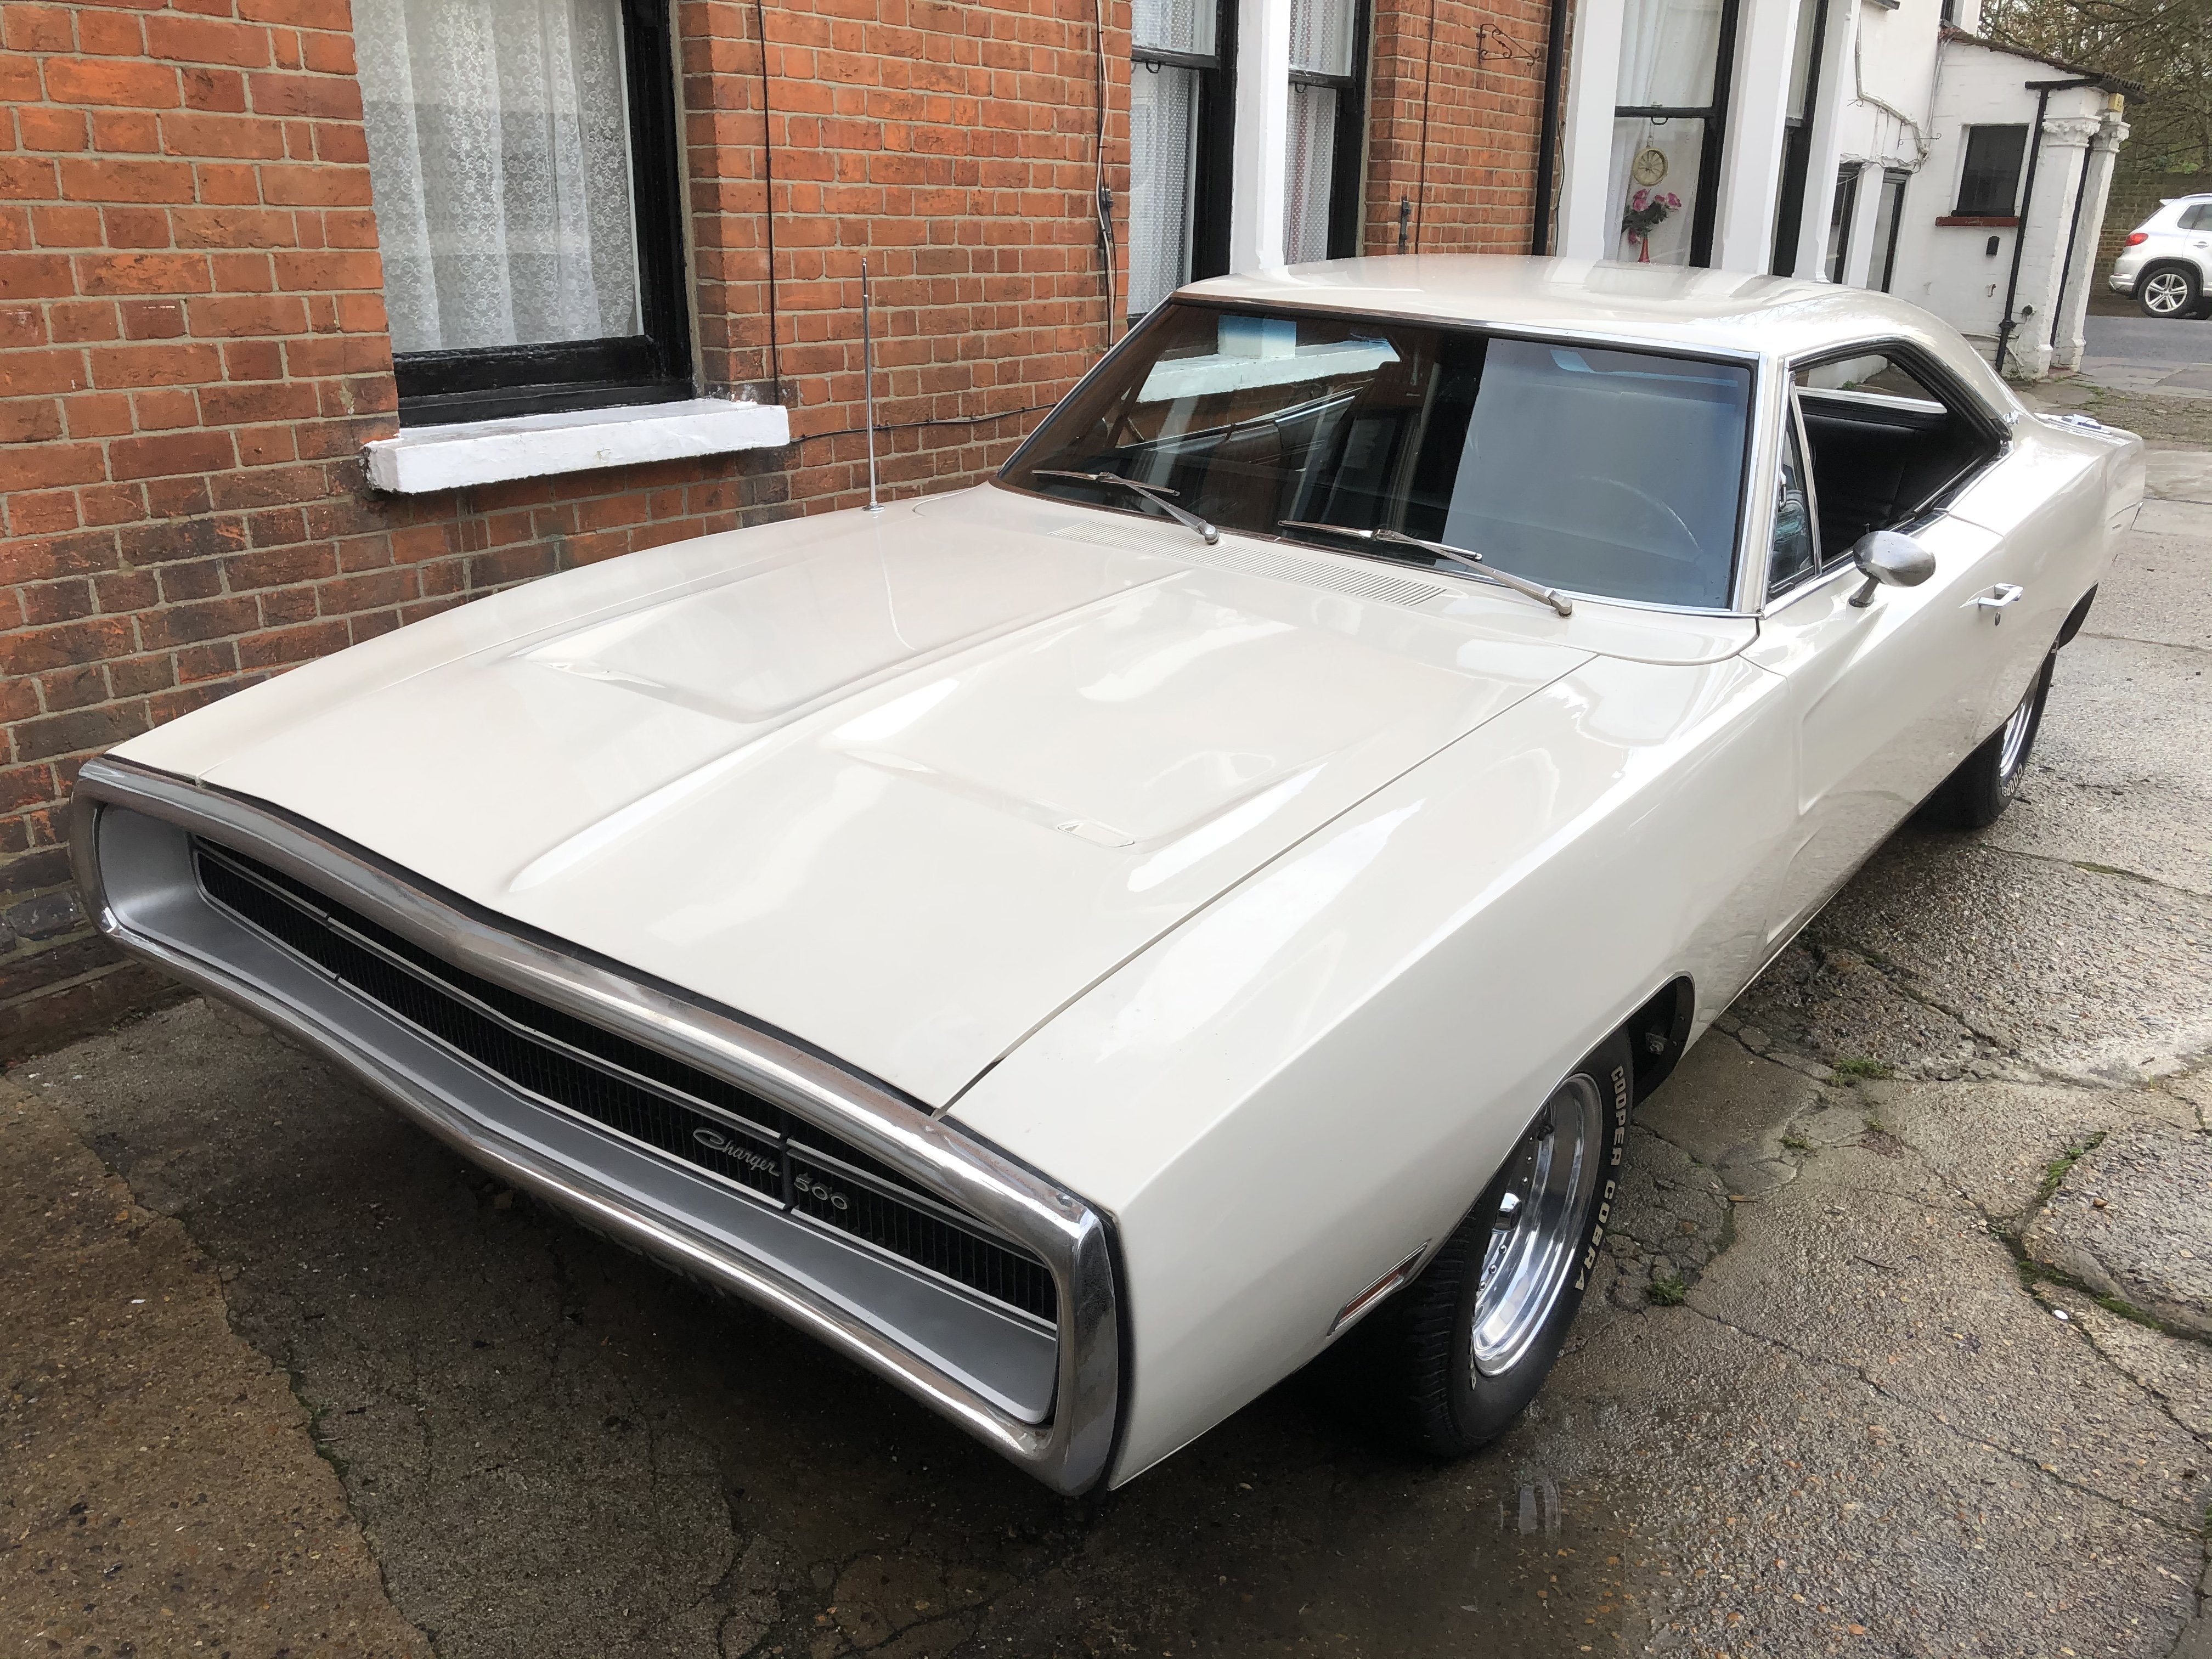 1970 Dodge Charger 383 Big Block Auto For Sale (picture 1 of 1)